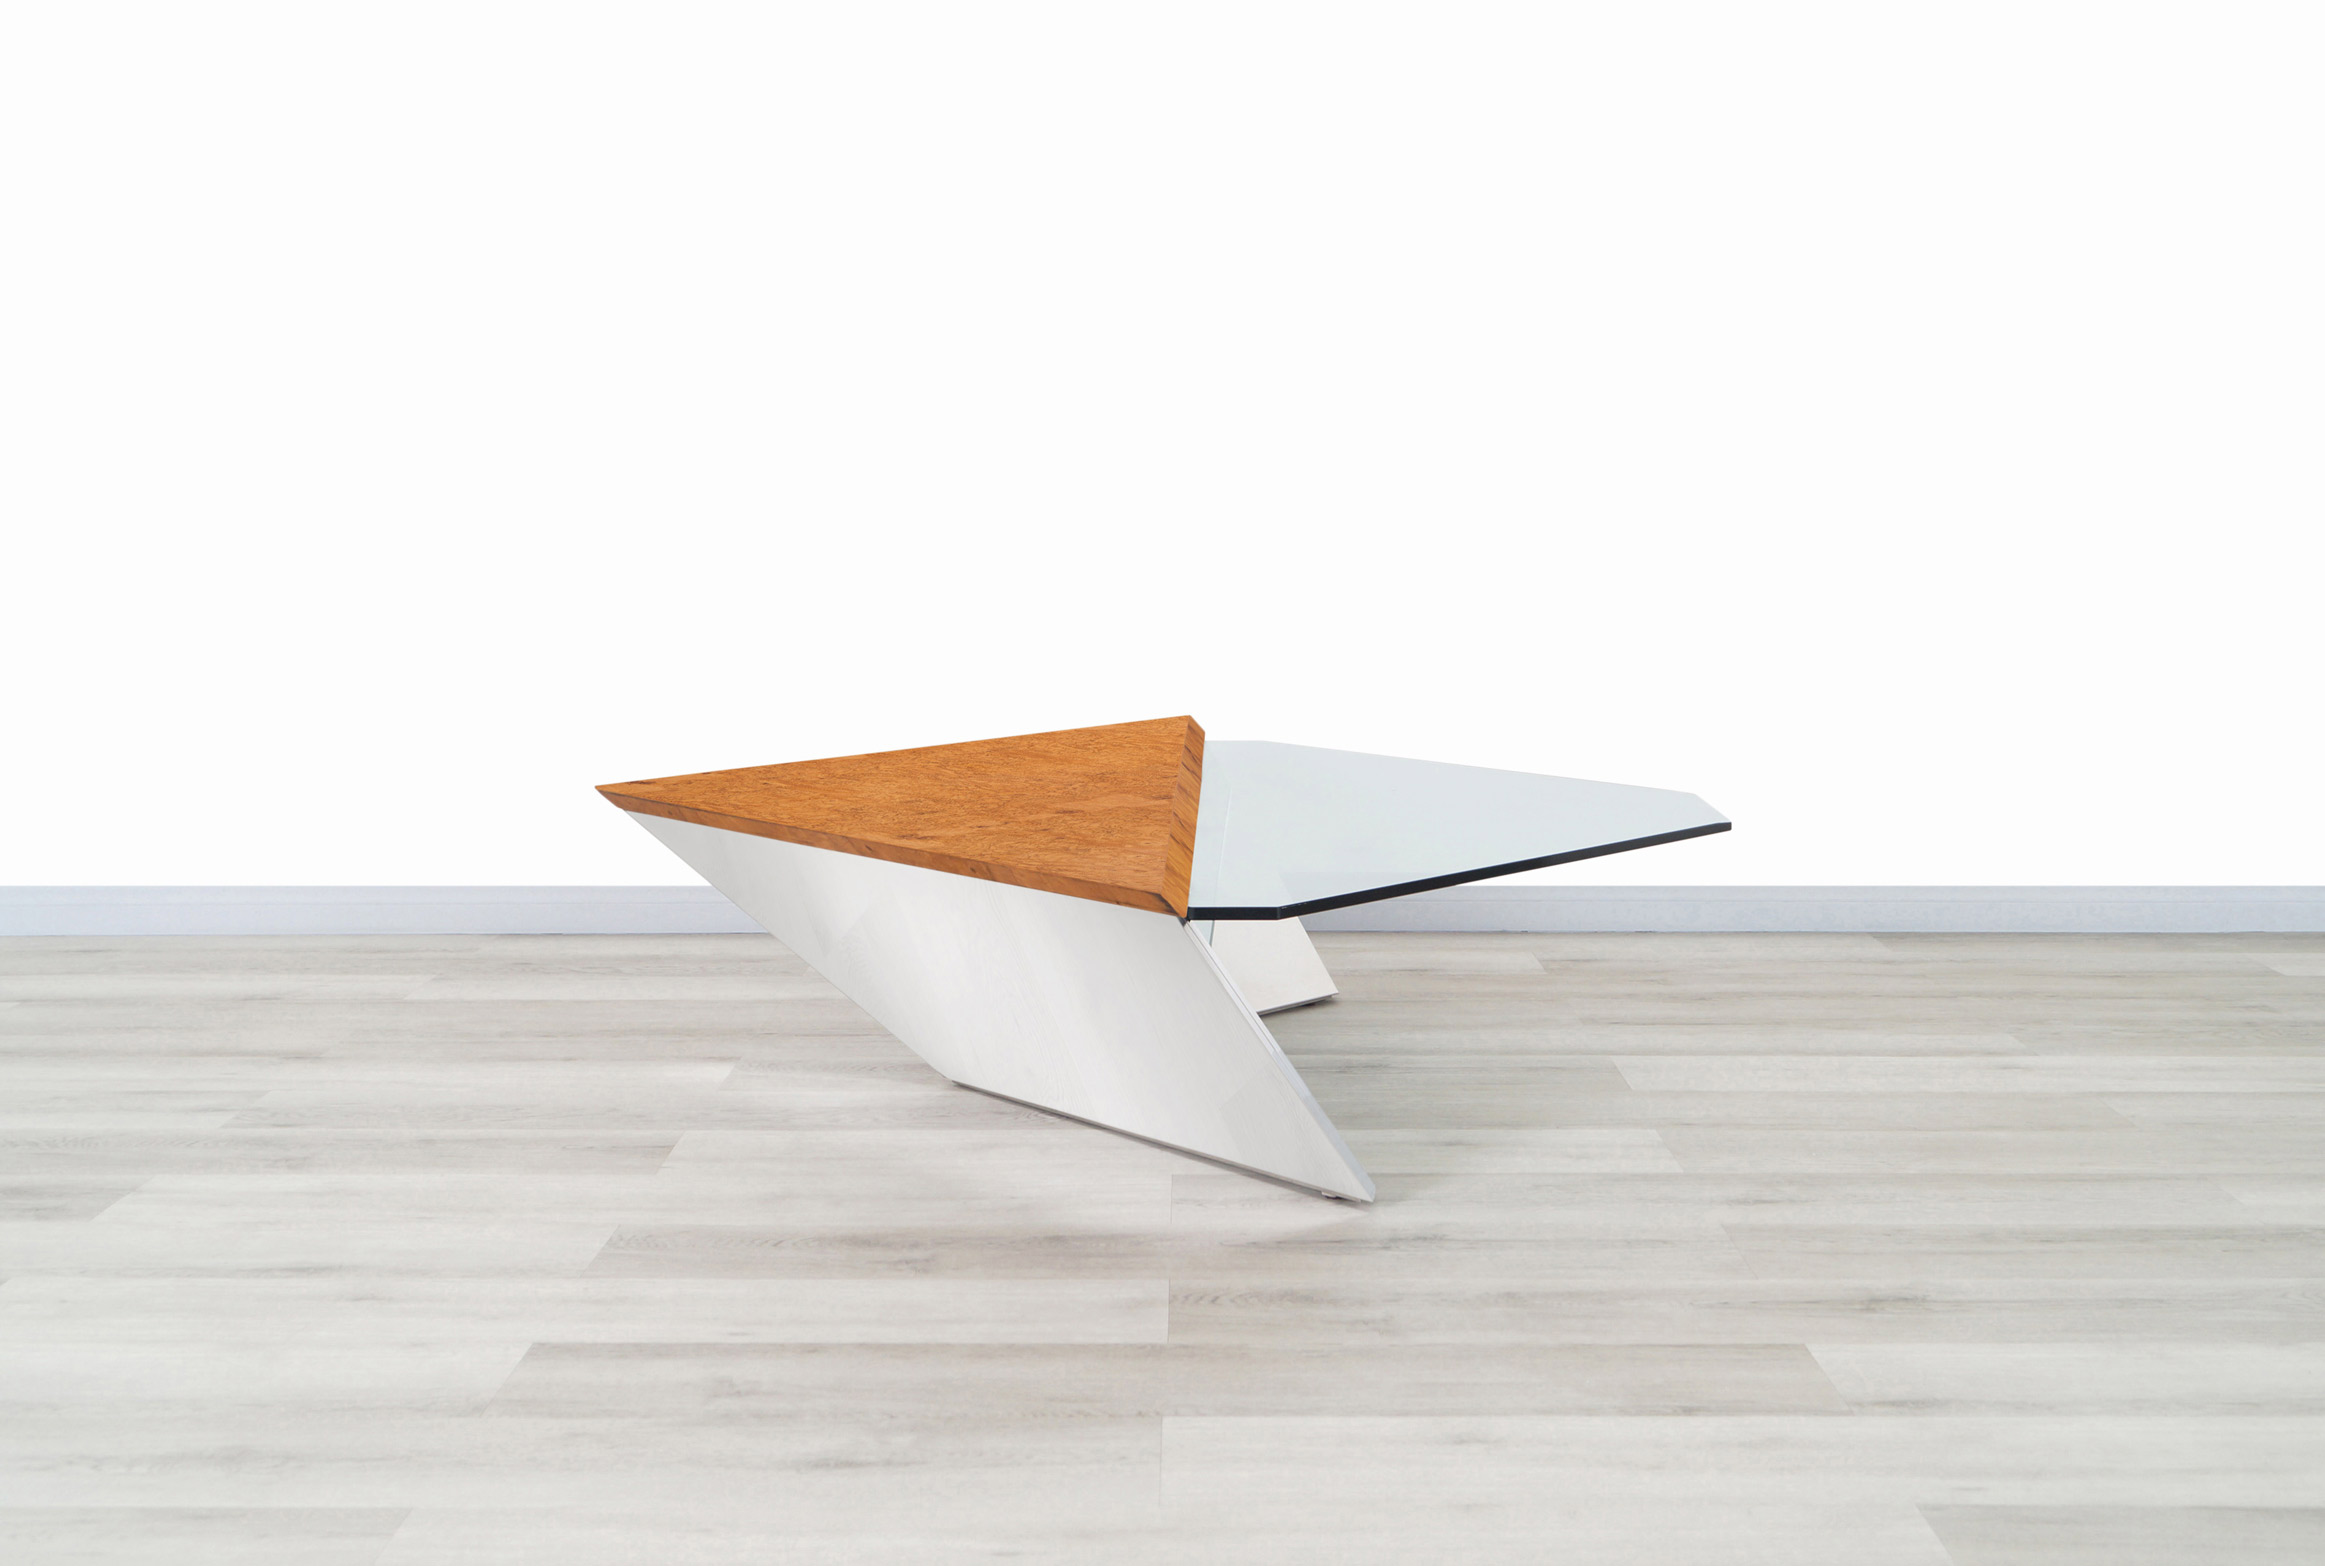 Vintage Stainless Steel Cantilevered Coffee Table Attributed to Brueton